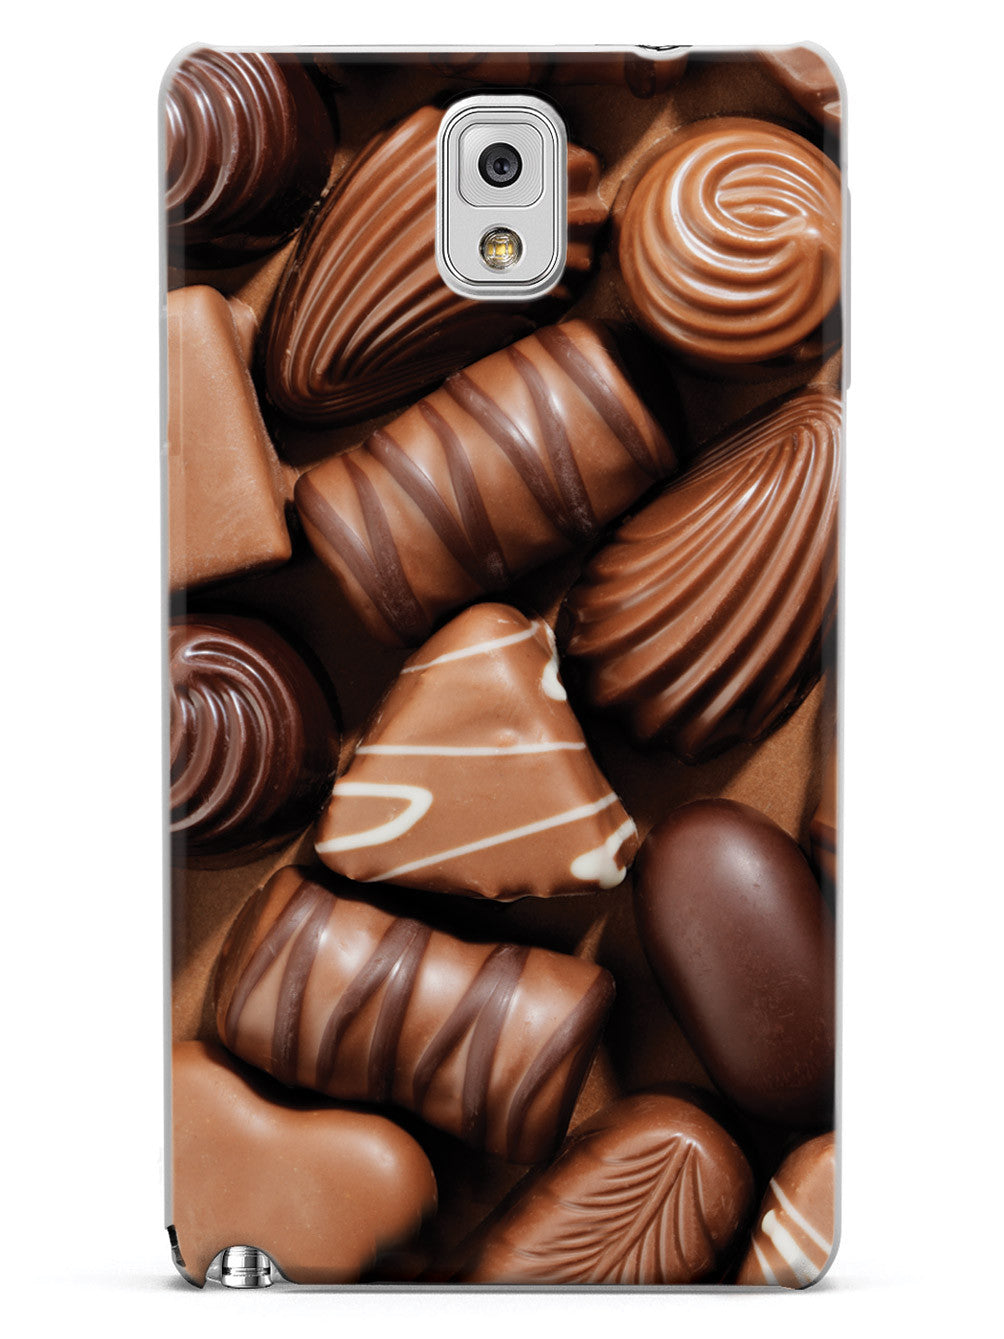 Assorted Chocolates - Chocolate Lover Case